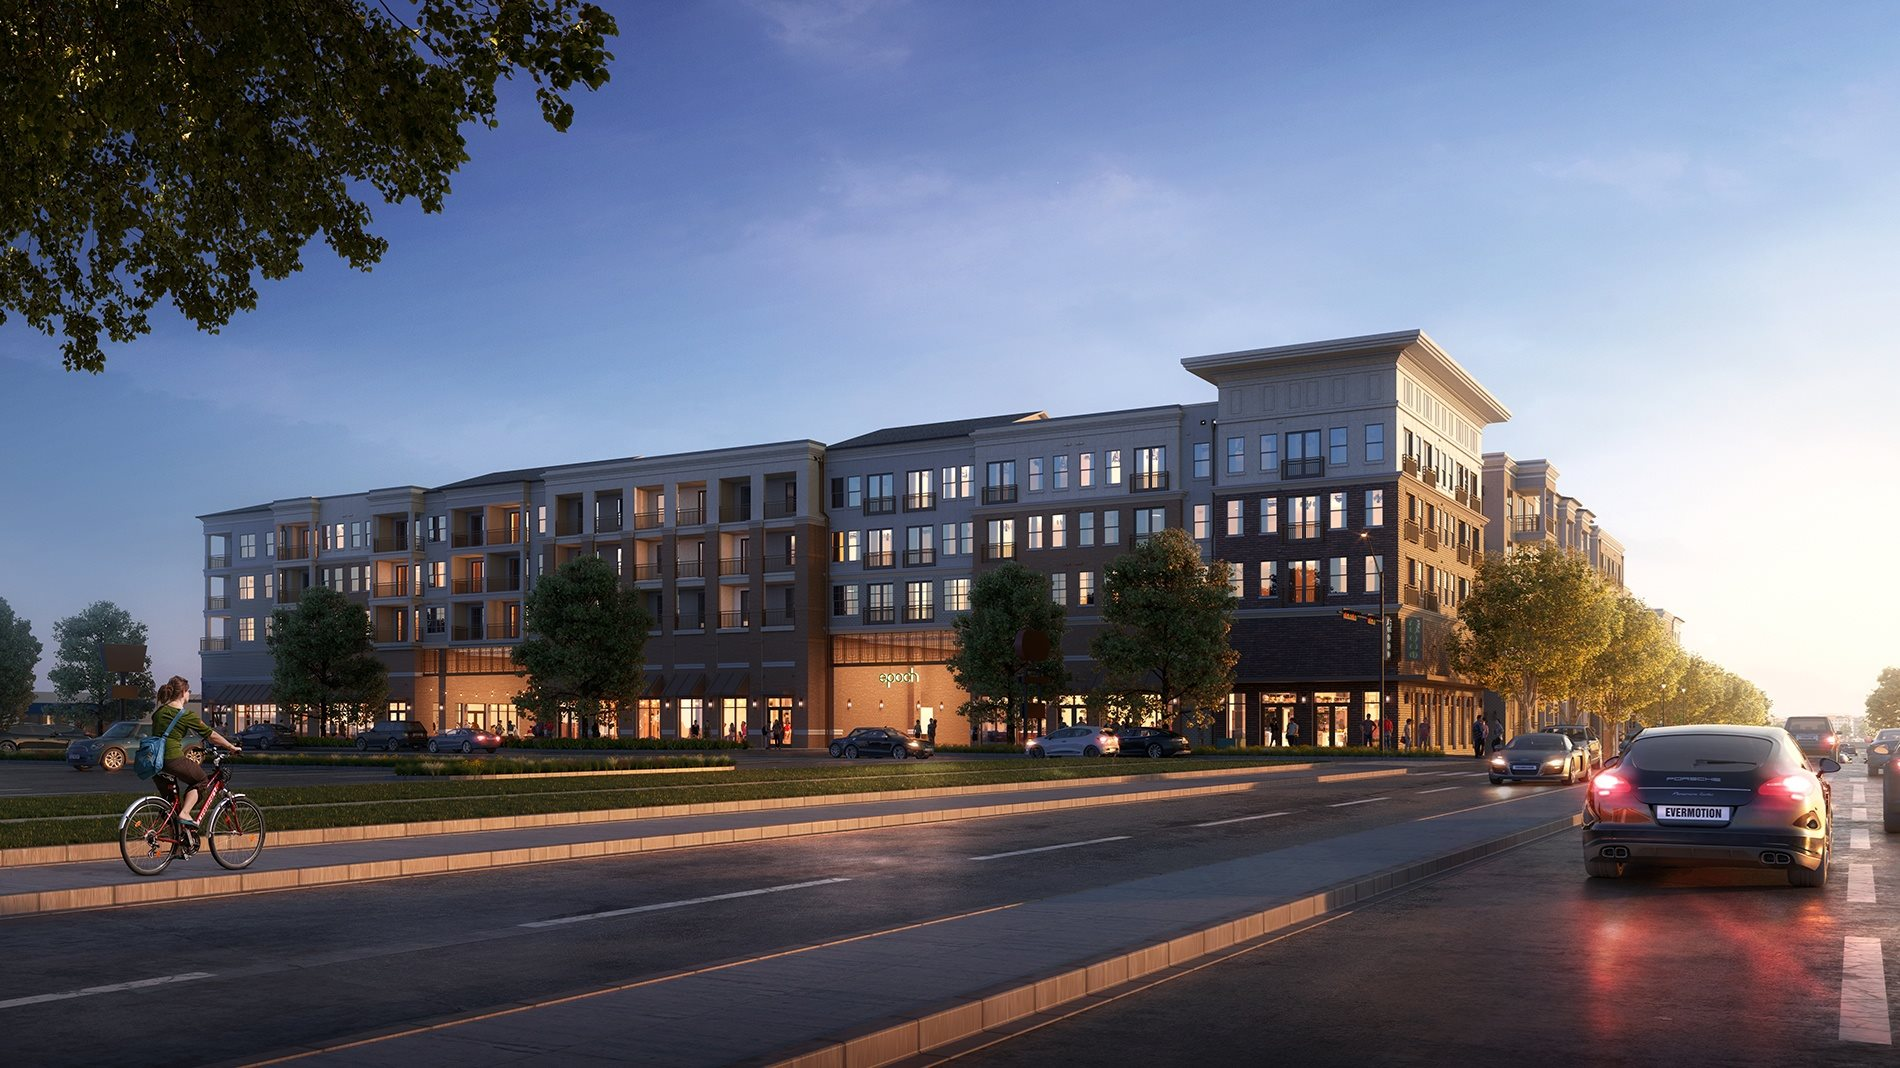 An upcoming look into our property | Epoch on Eagle | Apartments in Denton, TX,This is Epoch on Eagle | Epoch on Eagle | Apartments in Denton, TX